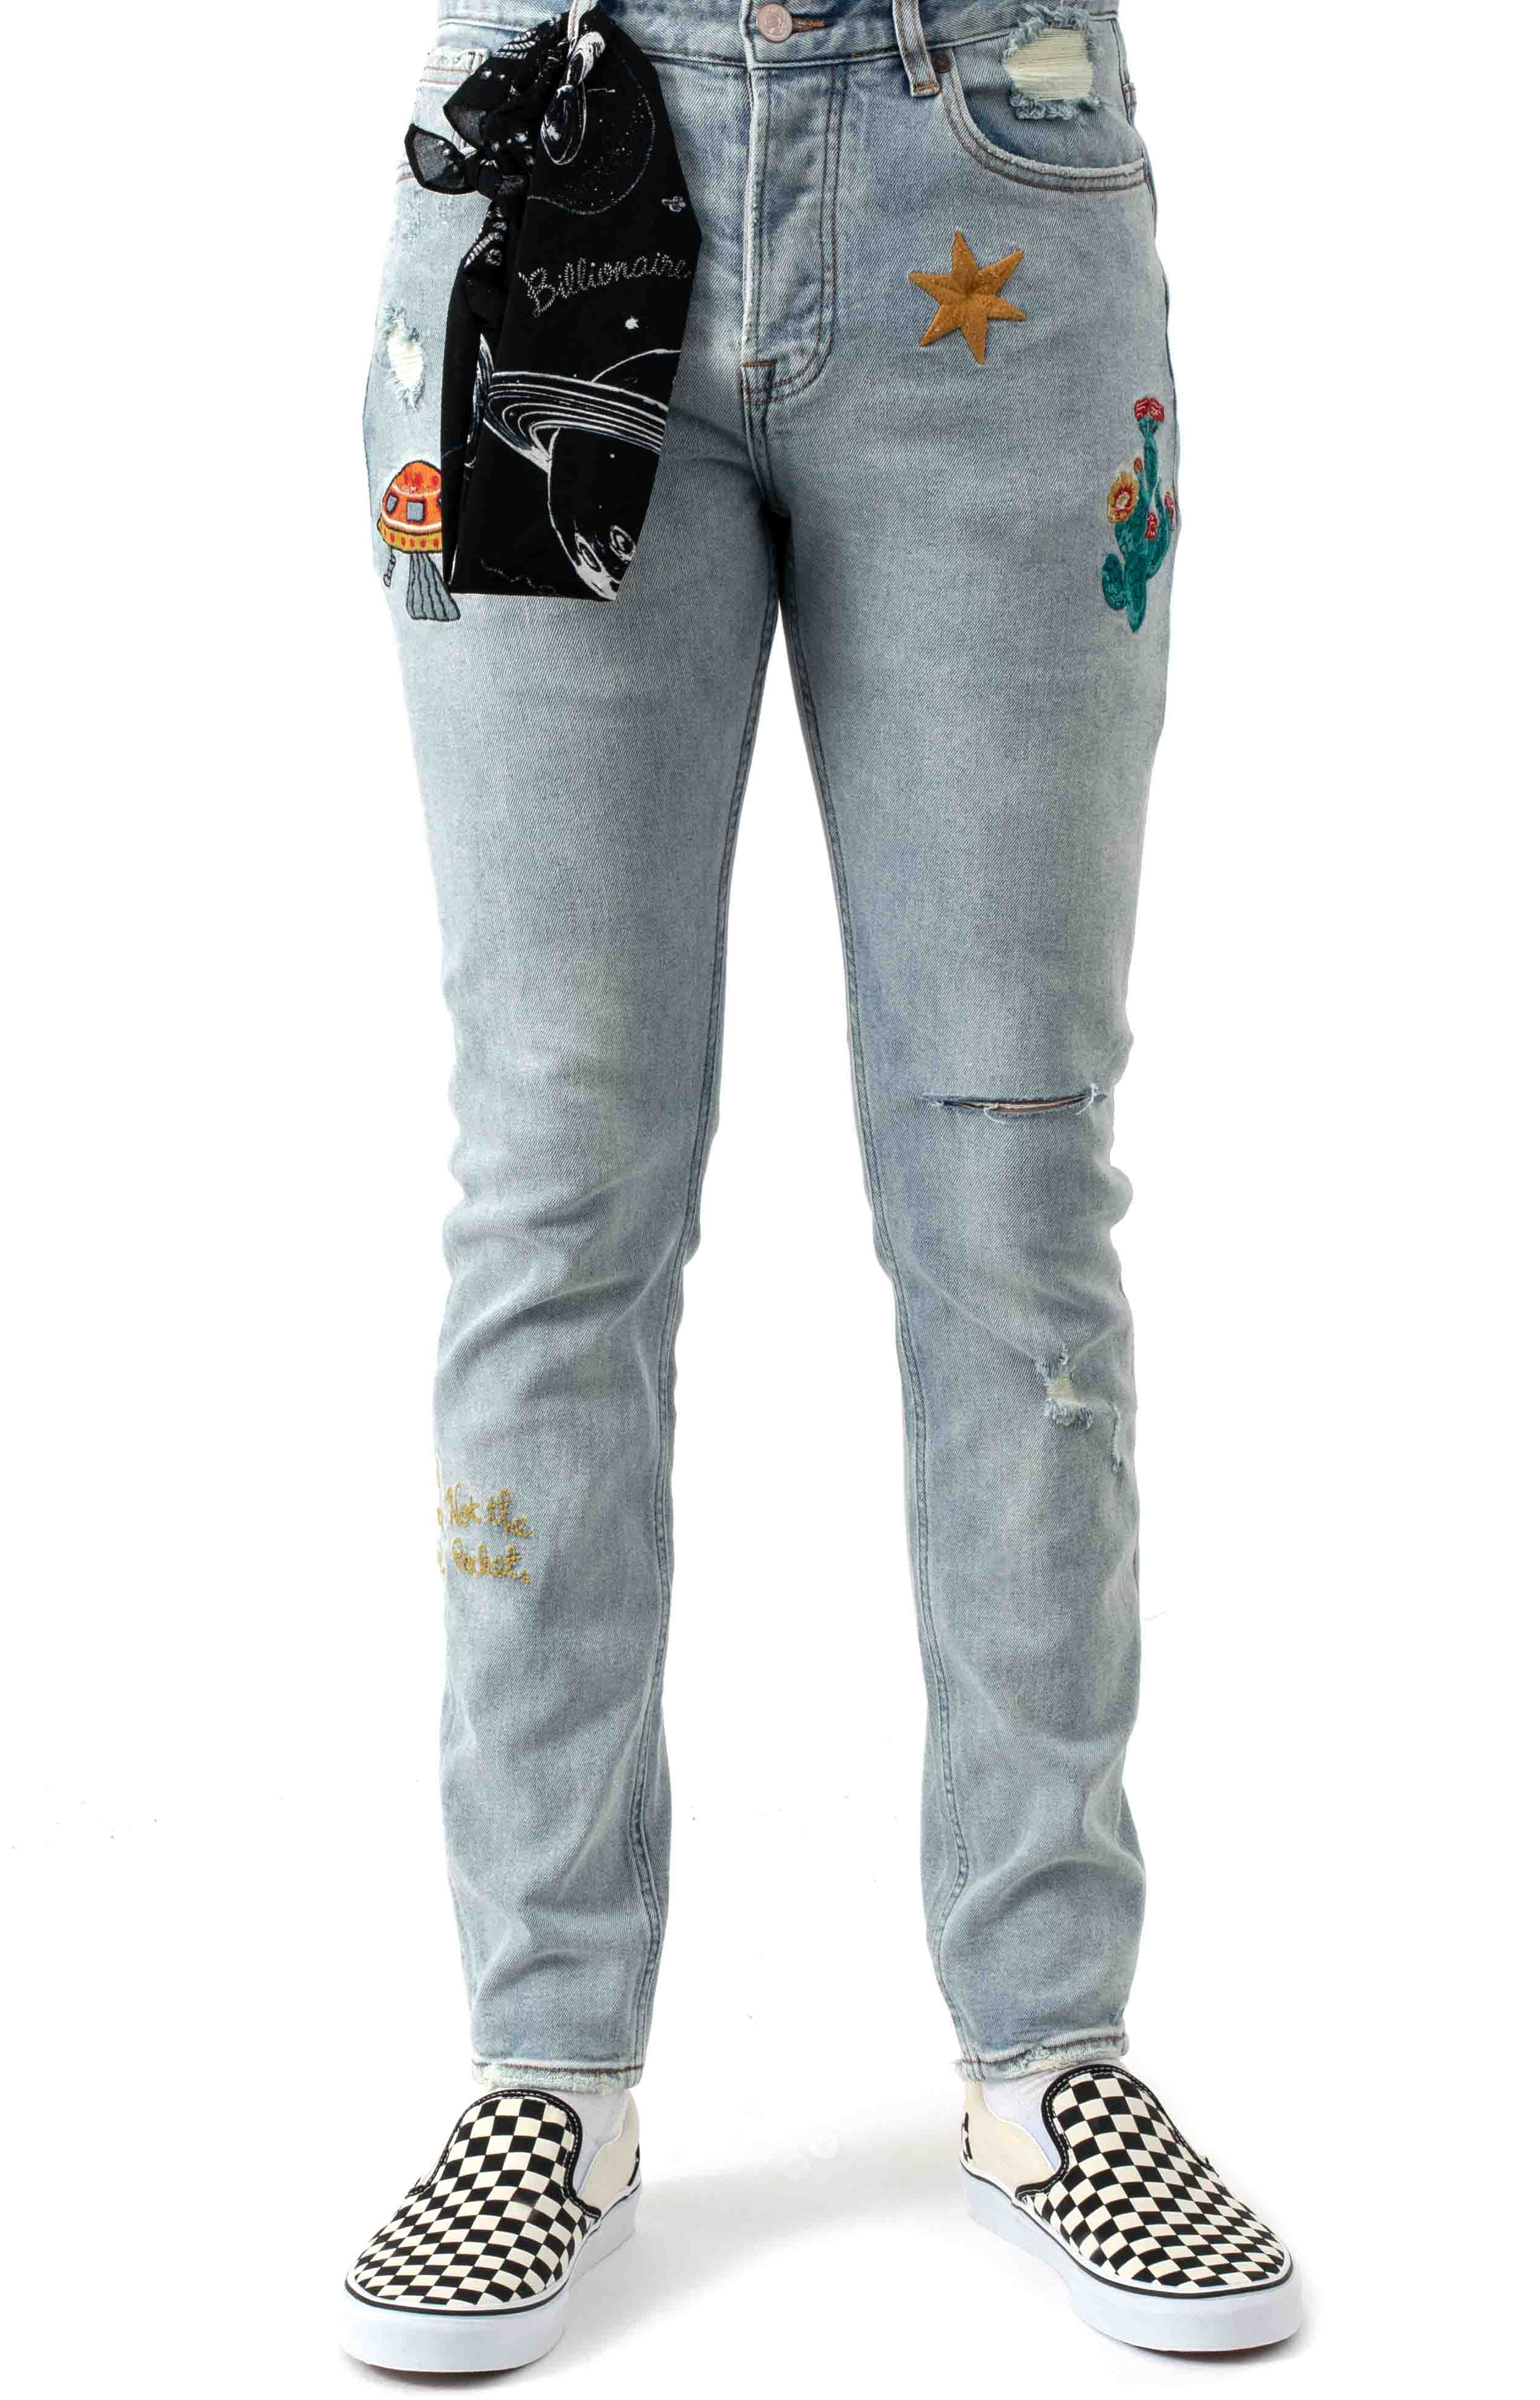 BB Dungarees Jeans - Infinity